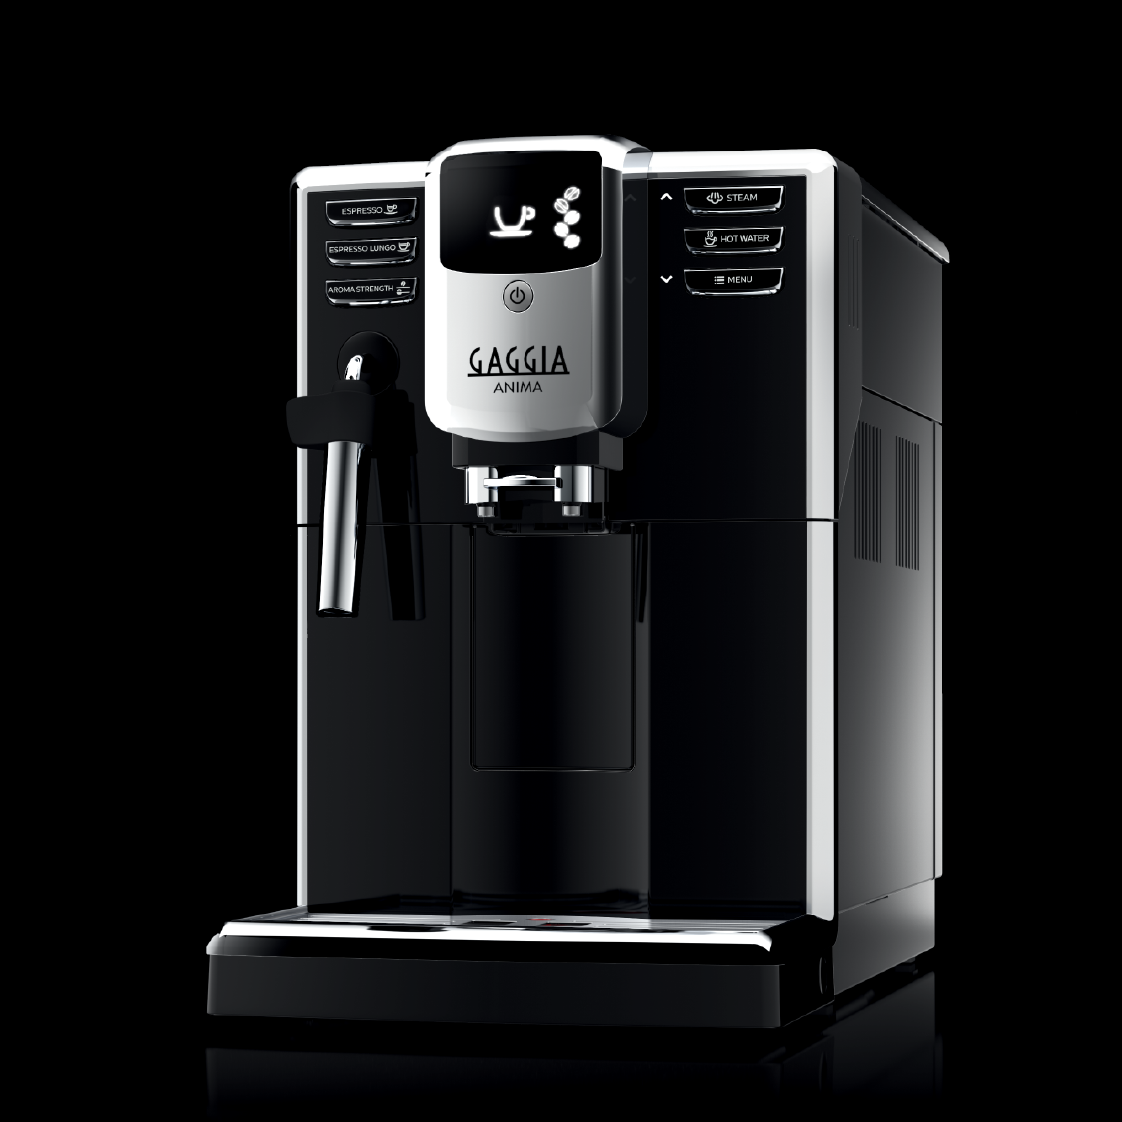 Gaggia Anima Black Coffee Machine ( COVID-19 PROMOTION )